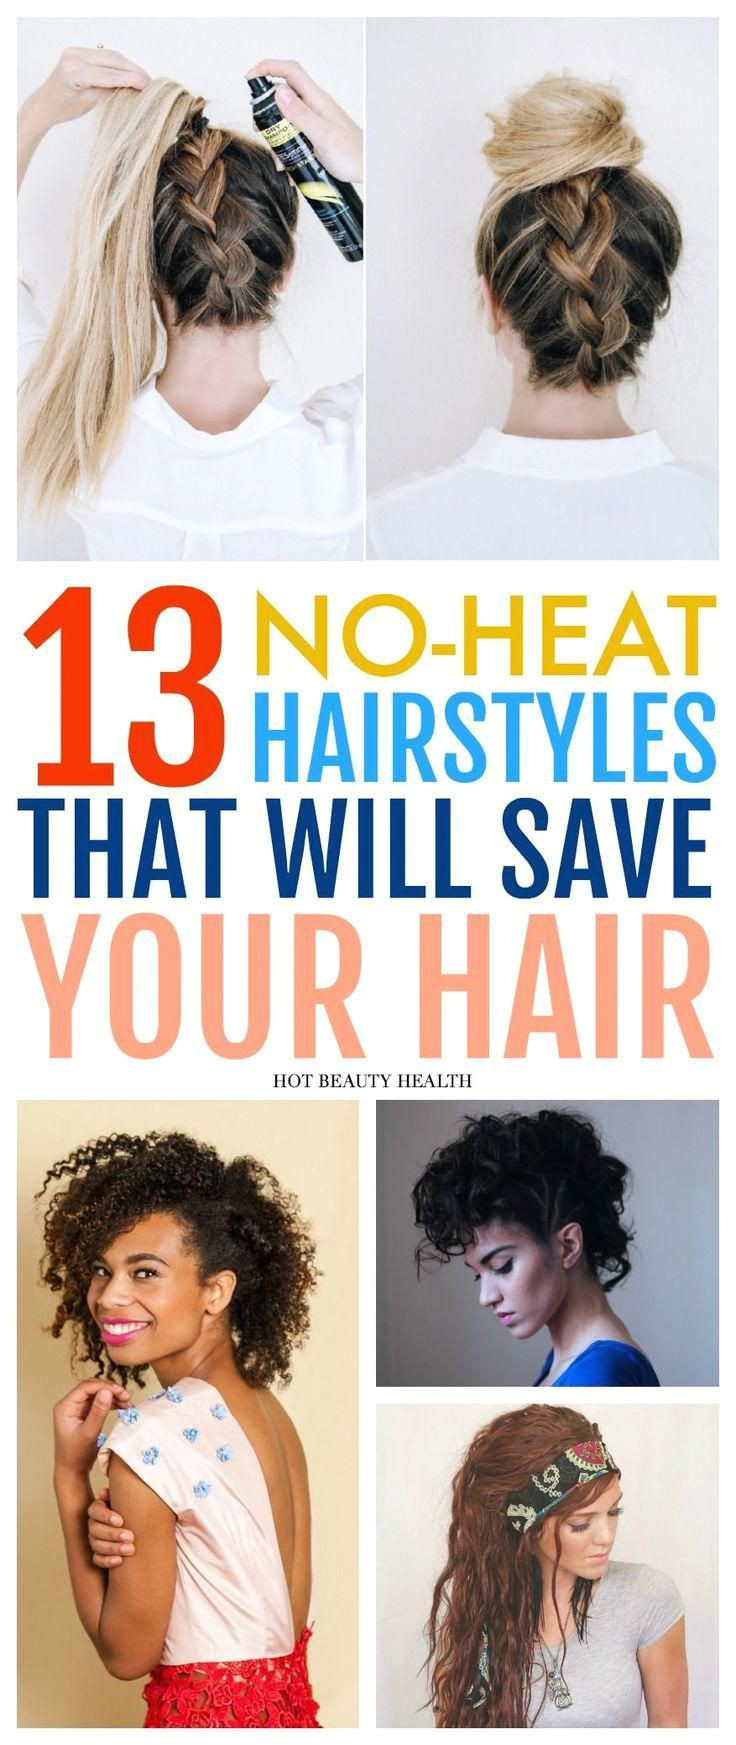 Easy Hairstyles No Braiding 13 Easy No Heat Hairstyles that Will Save Your Hair This Spring and